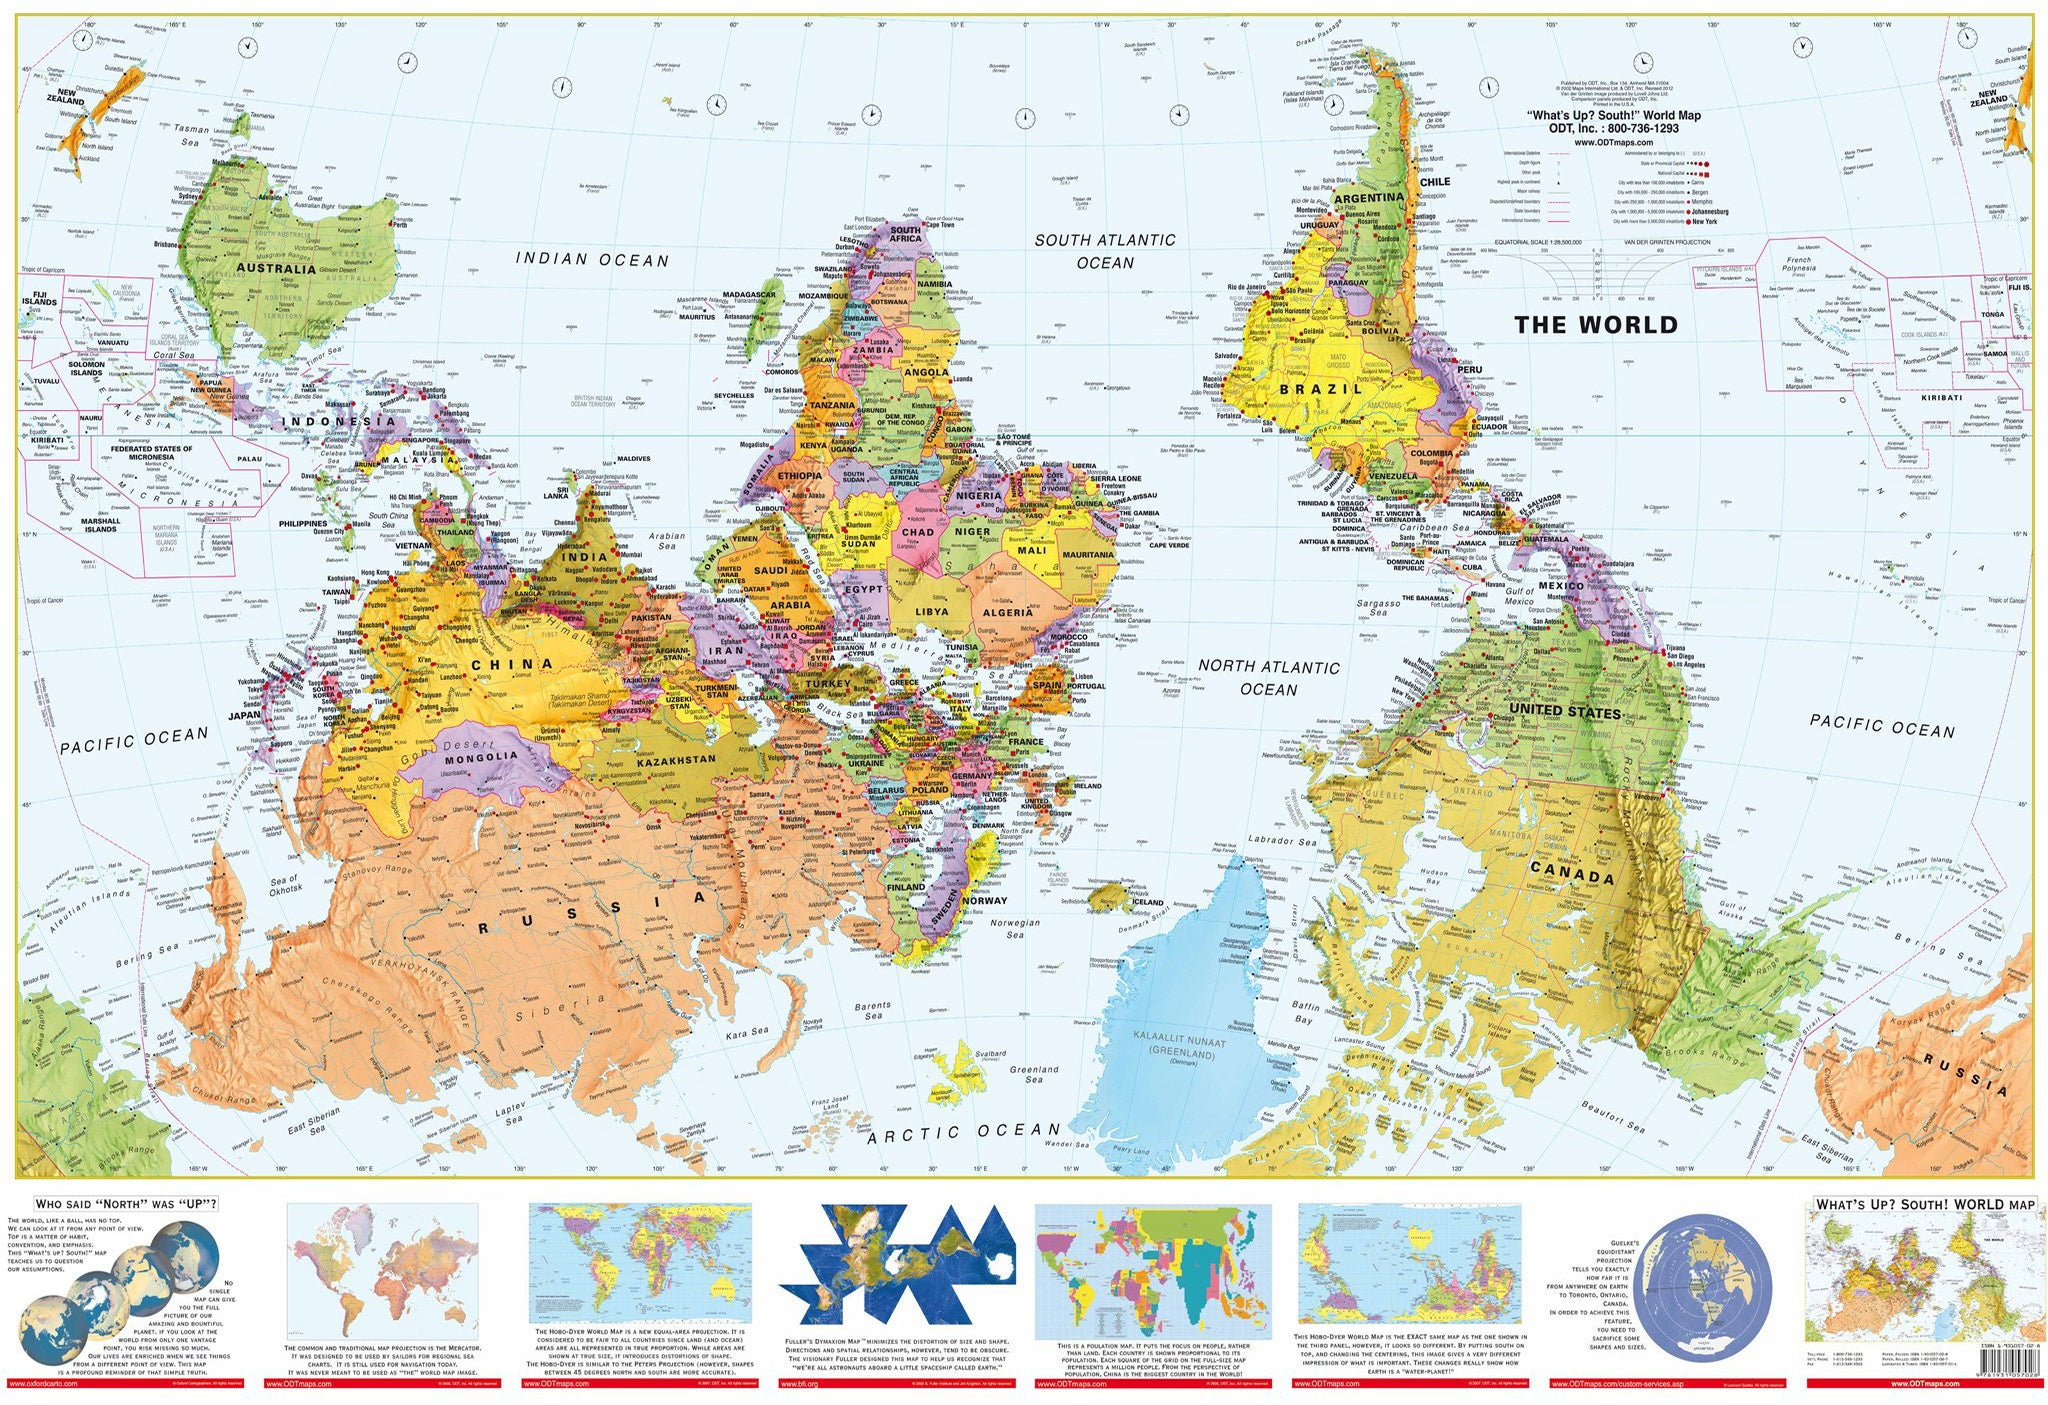 Australia Map Upside.Upside Down World 1430 X 920mm Laminated Wall Map